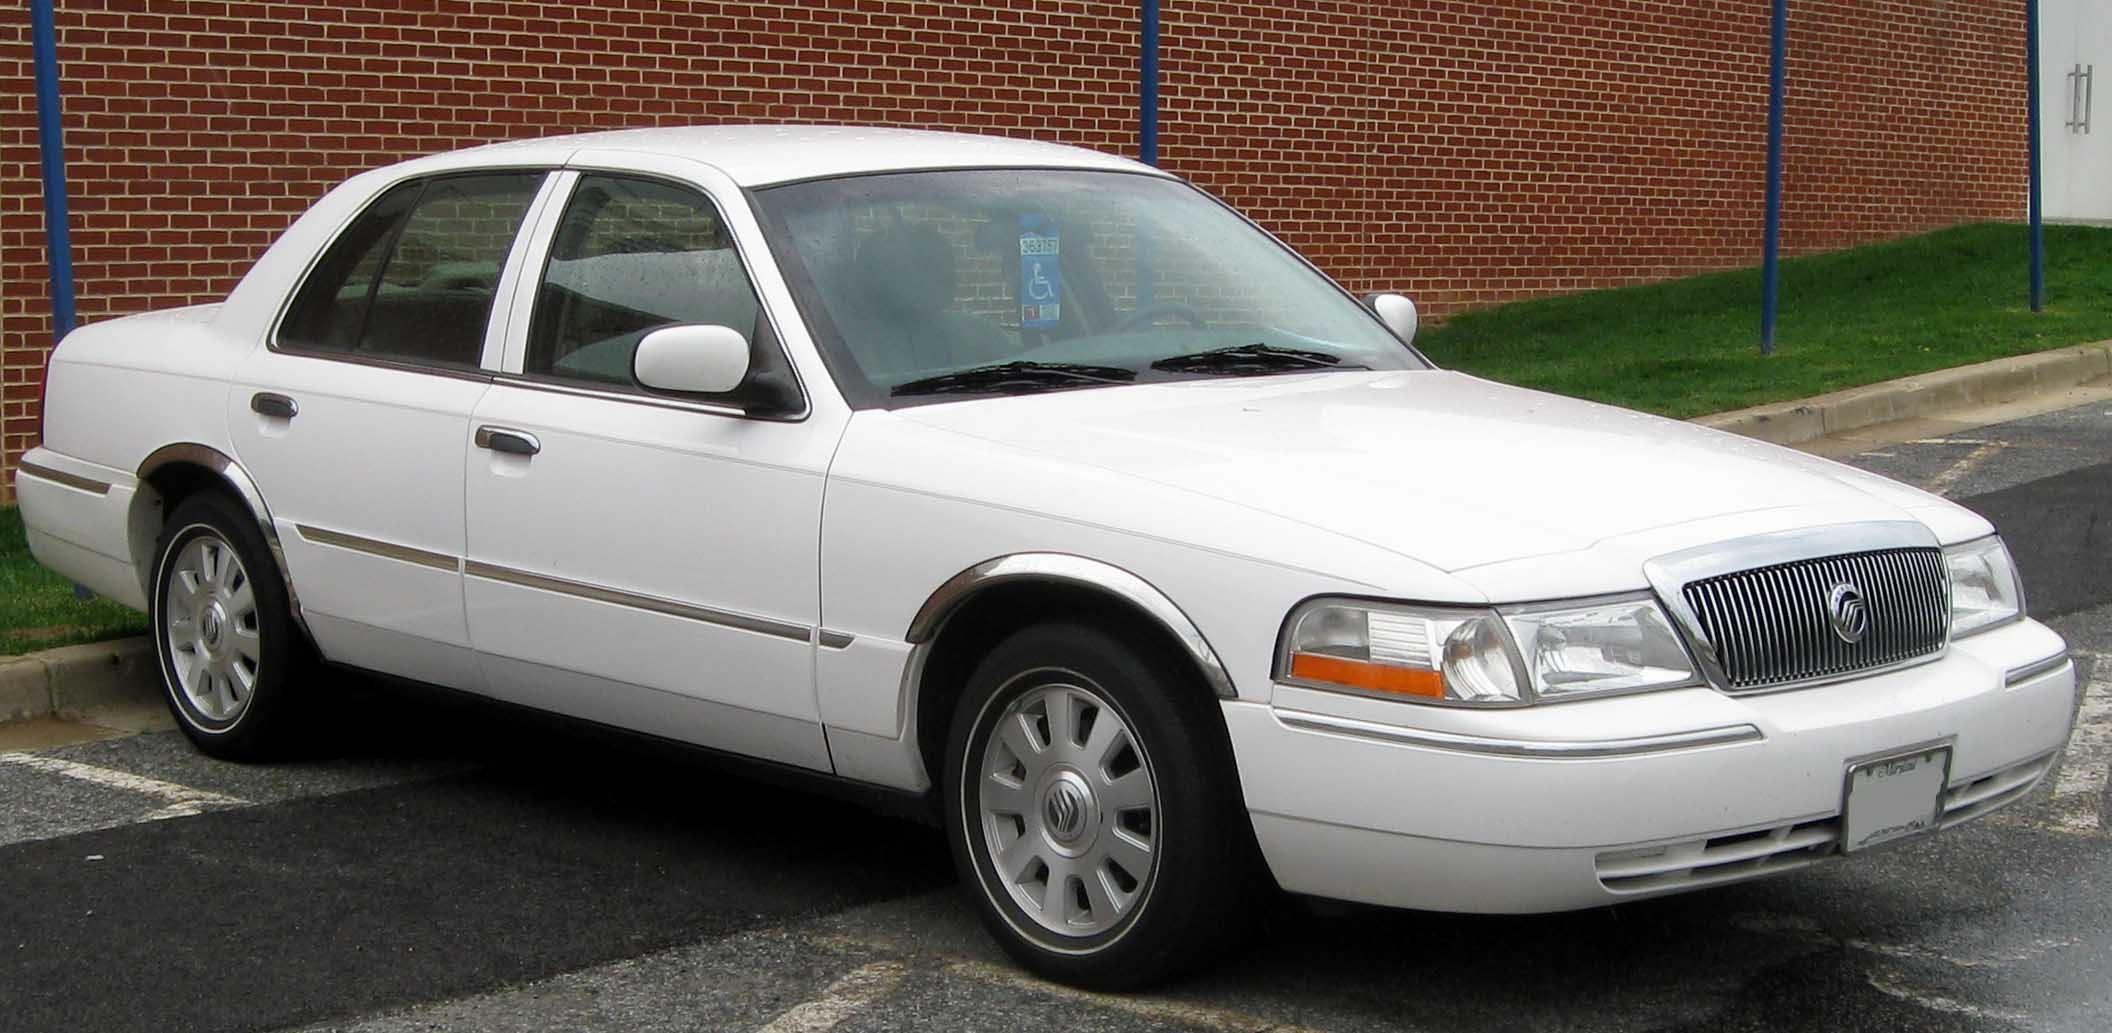 Mercury Grand Marquis Wikipedia